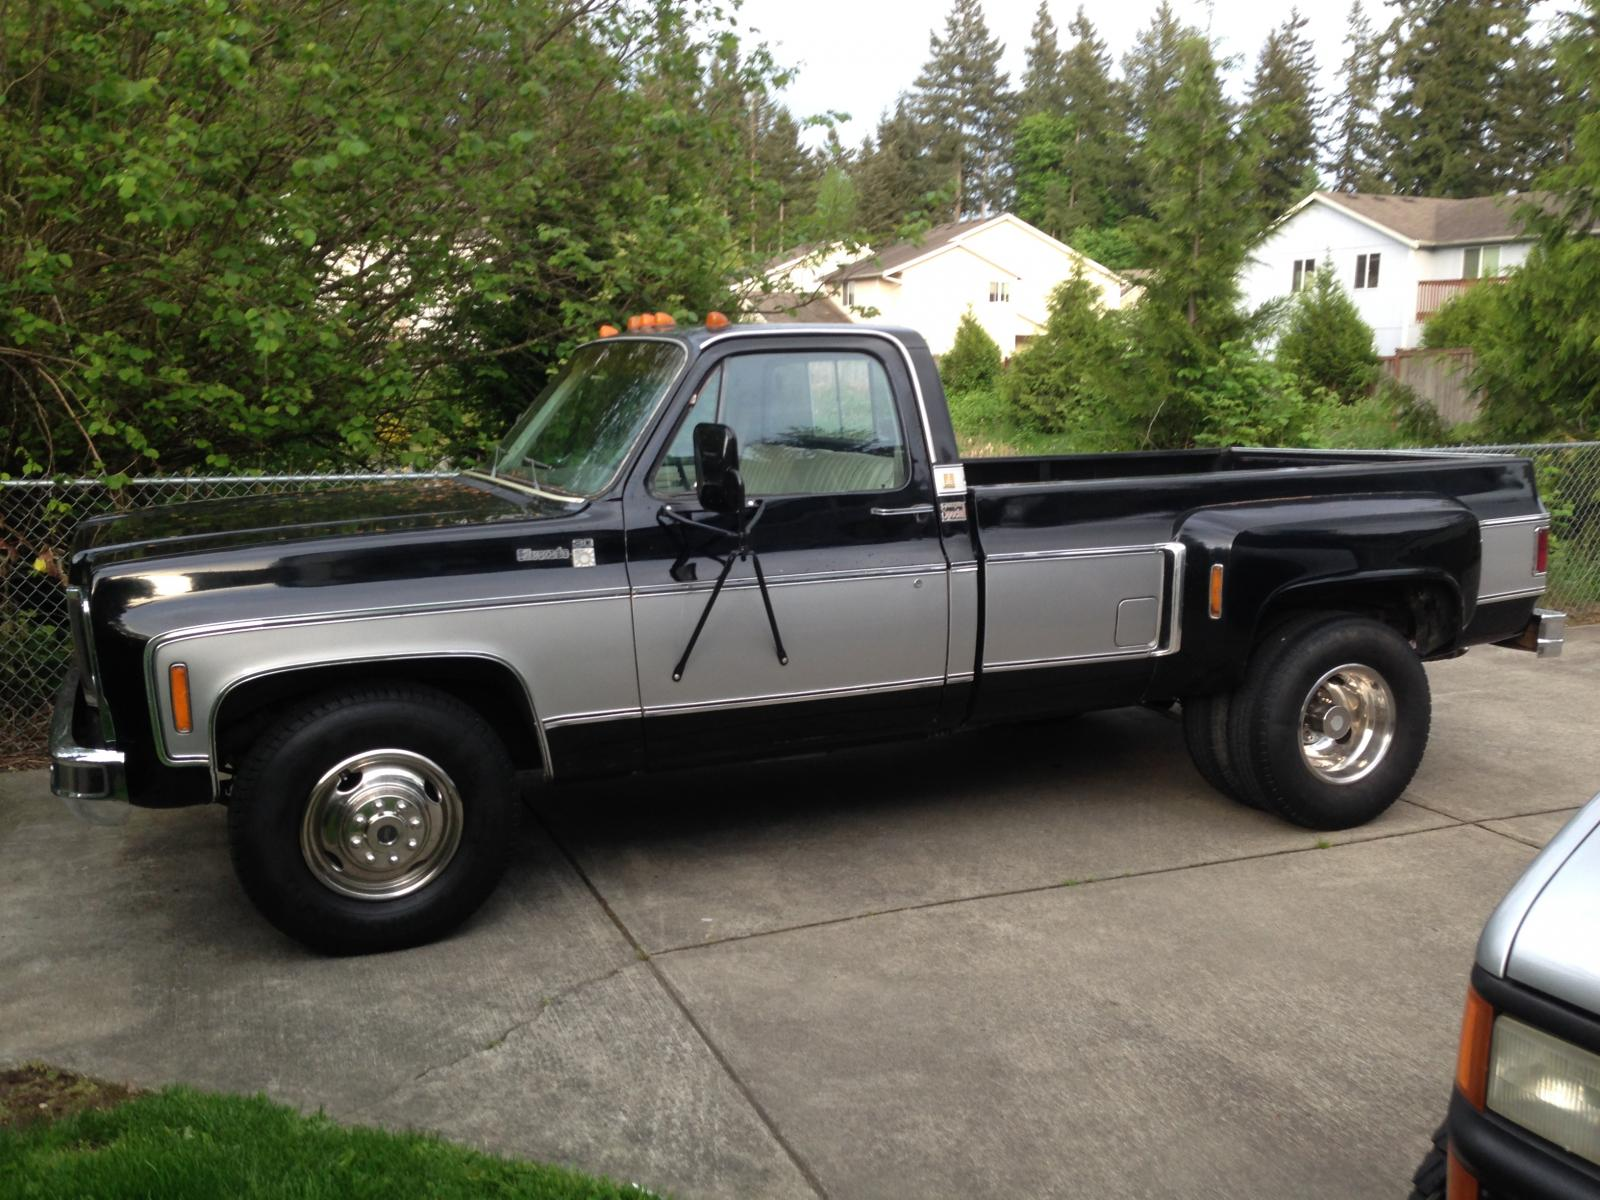 Thread 1979 chevy single cab 1 ton dually 454 400 vintage tow rig